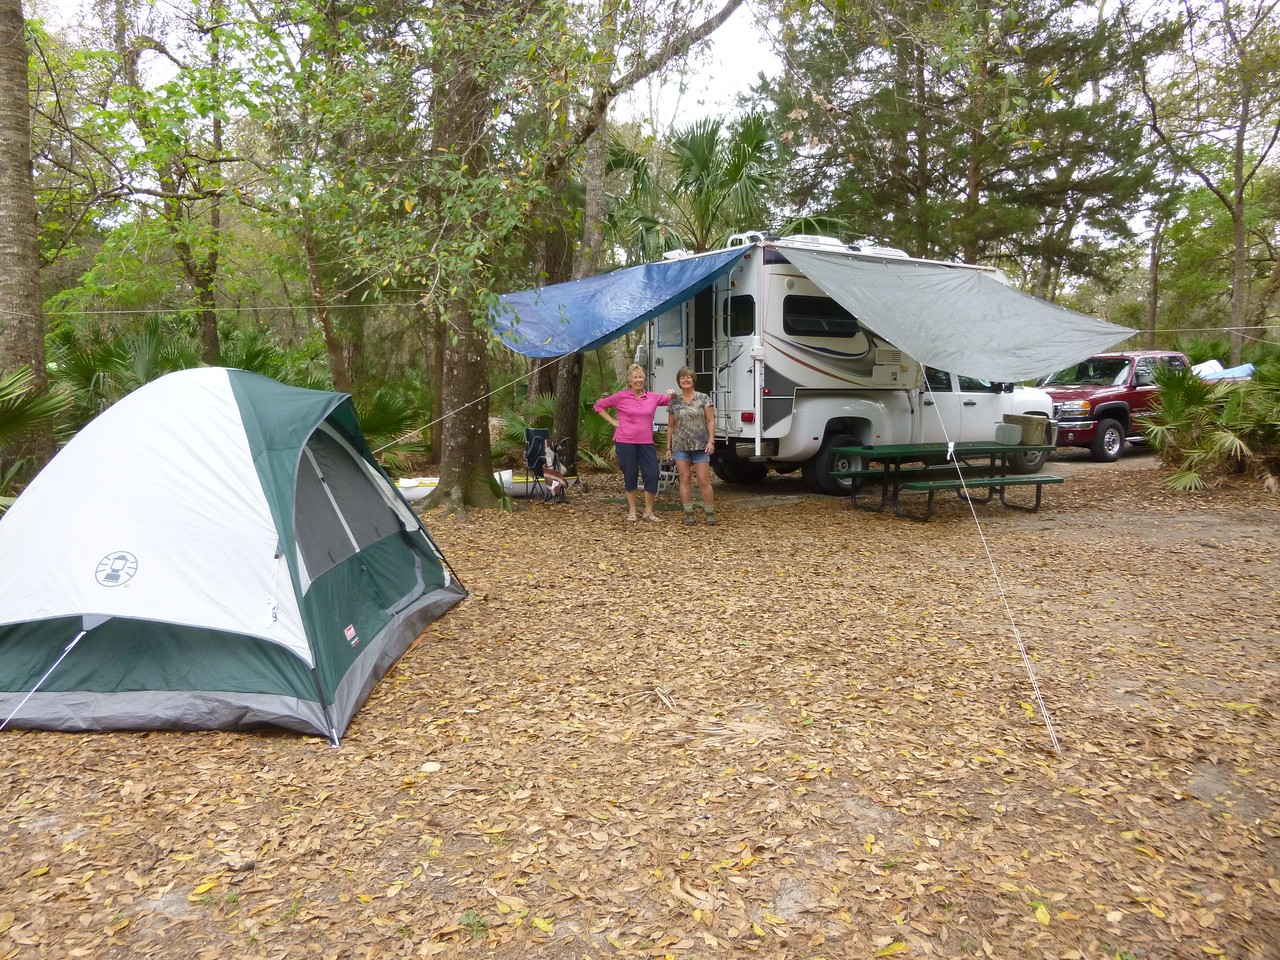 Record #434   DATE: 3/12/2017  DAY: Sun  ST:  FL NAME:  Juniper Springs CG LOCATION:  Ocala NF SITE #:   60    COST:   $11.55+$4.50 reserve fee water, dump, showers   This trip was the Windyakers camping/kayaking trip to Juniper Springs.  There were 16 campers at 5 CG sites and 8 B&B/motel gals.  On I75 after Wildwood, the traffic came to stop/go for miles with over 30 miles to go to Ocala.  Finally able to exit and cut over to FL35.  This was the same traffic mess I had last year going to Juniper Springs.  I was the first to arrive at the CG.  It was an easy back into my site and it was level so no blocks.    Rain forecast was 70% for the next 2 days, so the first item was to put up the tarps.  Yesterday, I made a halyard system for the starboard side of the camper, just like I have for the back of the camper.  Now, both tarps can be put up without climbing up on the roof.  This was a safety issue that I needed.  Lori & Betty arrived before 3pm.  It was nice to have the extra help unloading my kayak from inside the camper.  I can do it myself, but it is sure easier with help.    The 3 of us dragged the picnic table next to the camper so it would be under the tarp from the rain.  It was spitting rain.  Plans were for Sandy Huff & SarahBeth Reeves to join us for dinner and they were to bring appetizers.  We were sure getting hungry when they still were not at the CG by 5pm  Finally, with a frantic call and text message WE ARE STARVING, we discovered they were still at their motel.  They finally arrived at 5:30pm with enough appetizers to feed an army!  Betty made chicken chili for dinner, and we ate chocolate brownies that SB brought for dessert around the campfire.   When the B&B gals arrived to join in dinner and social activities with the rest of the campers, they just pulled off the pavement to park where they thought was ok.  The CG rangers were very stern that any vehicle off the pavement was $75 fine per tire.  Needless to say, we moved all the cars around to 